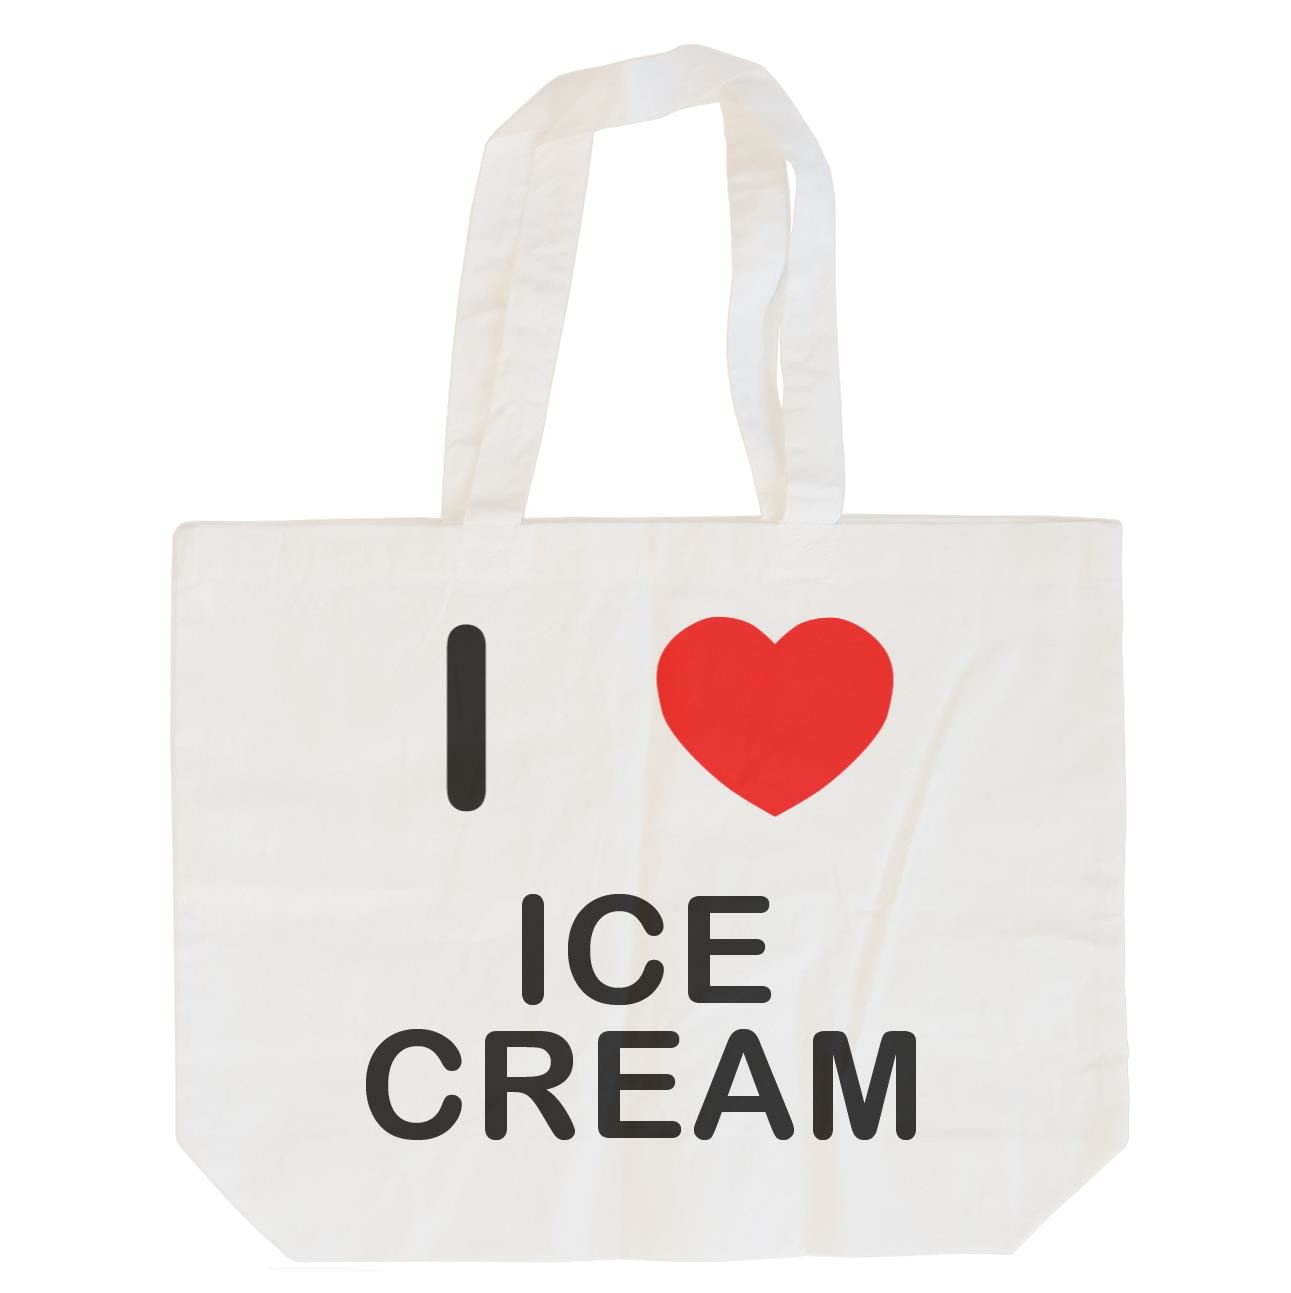 I Love Ice Cream - Cotton Bag | Size choice Tote, Shopper or Sling